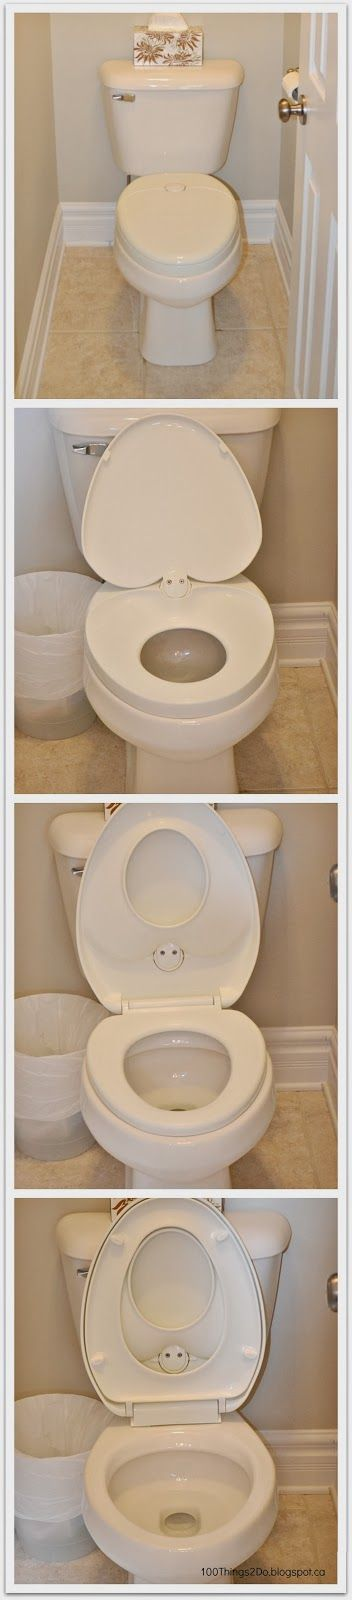 all in one toilet seat. All in one toilet seat with sizes for the whole family  Transitional Best 25 seats ideas on Pinterest Small